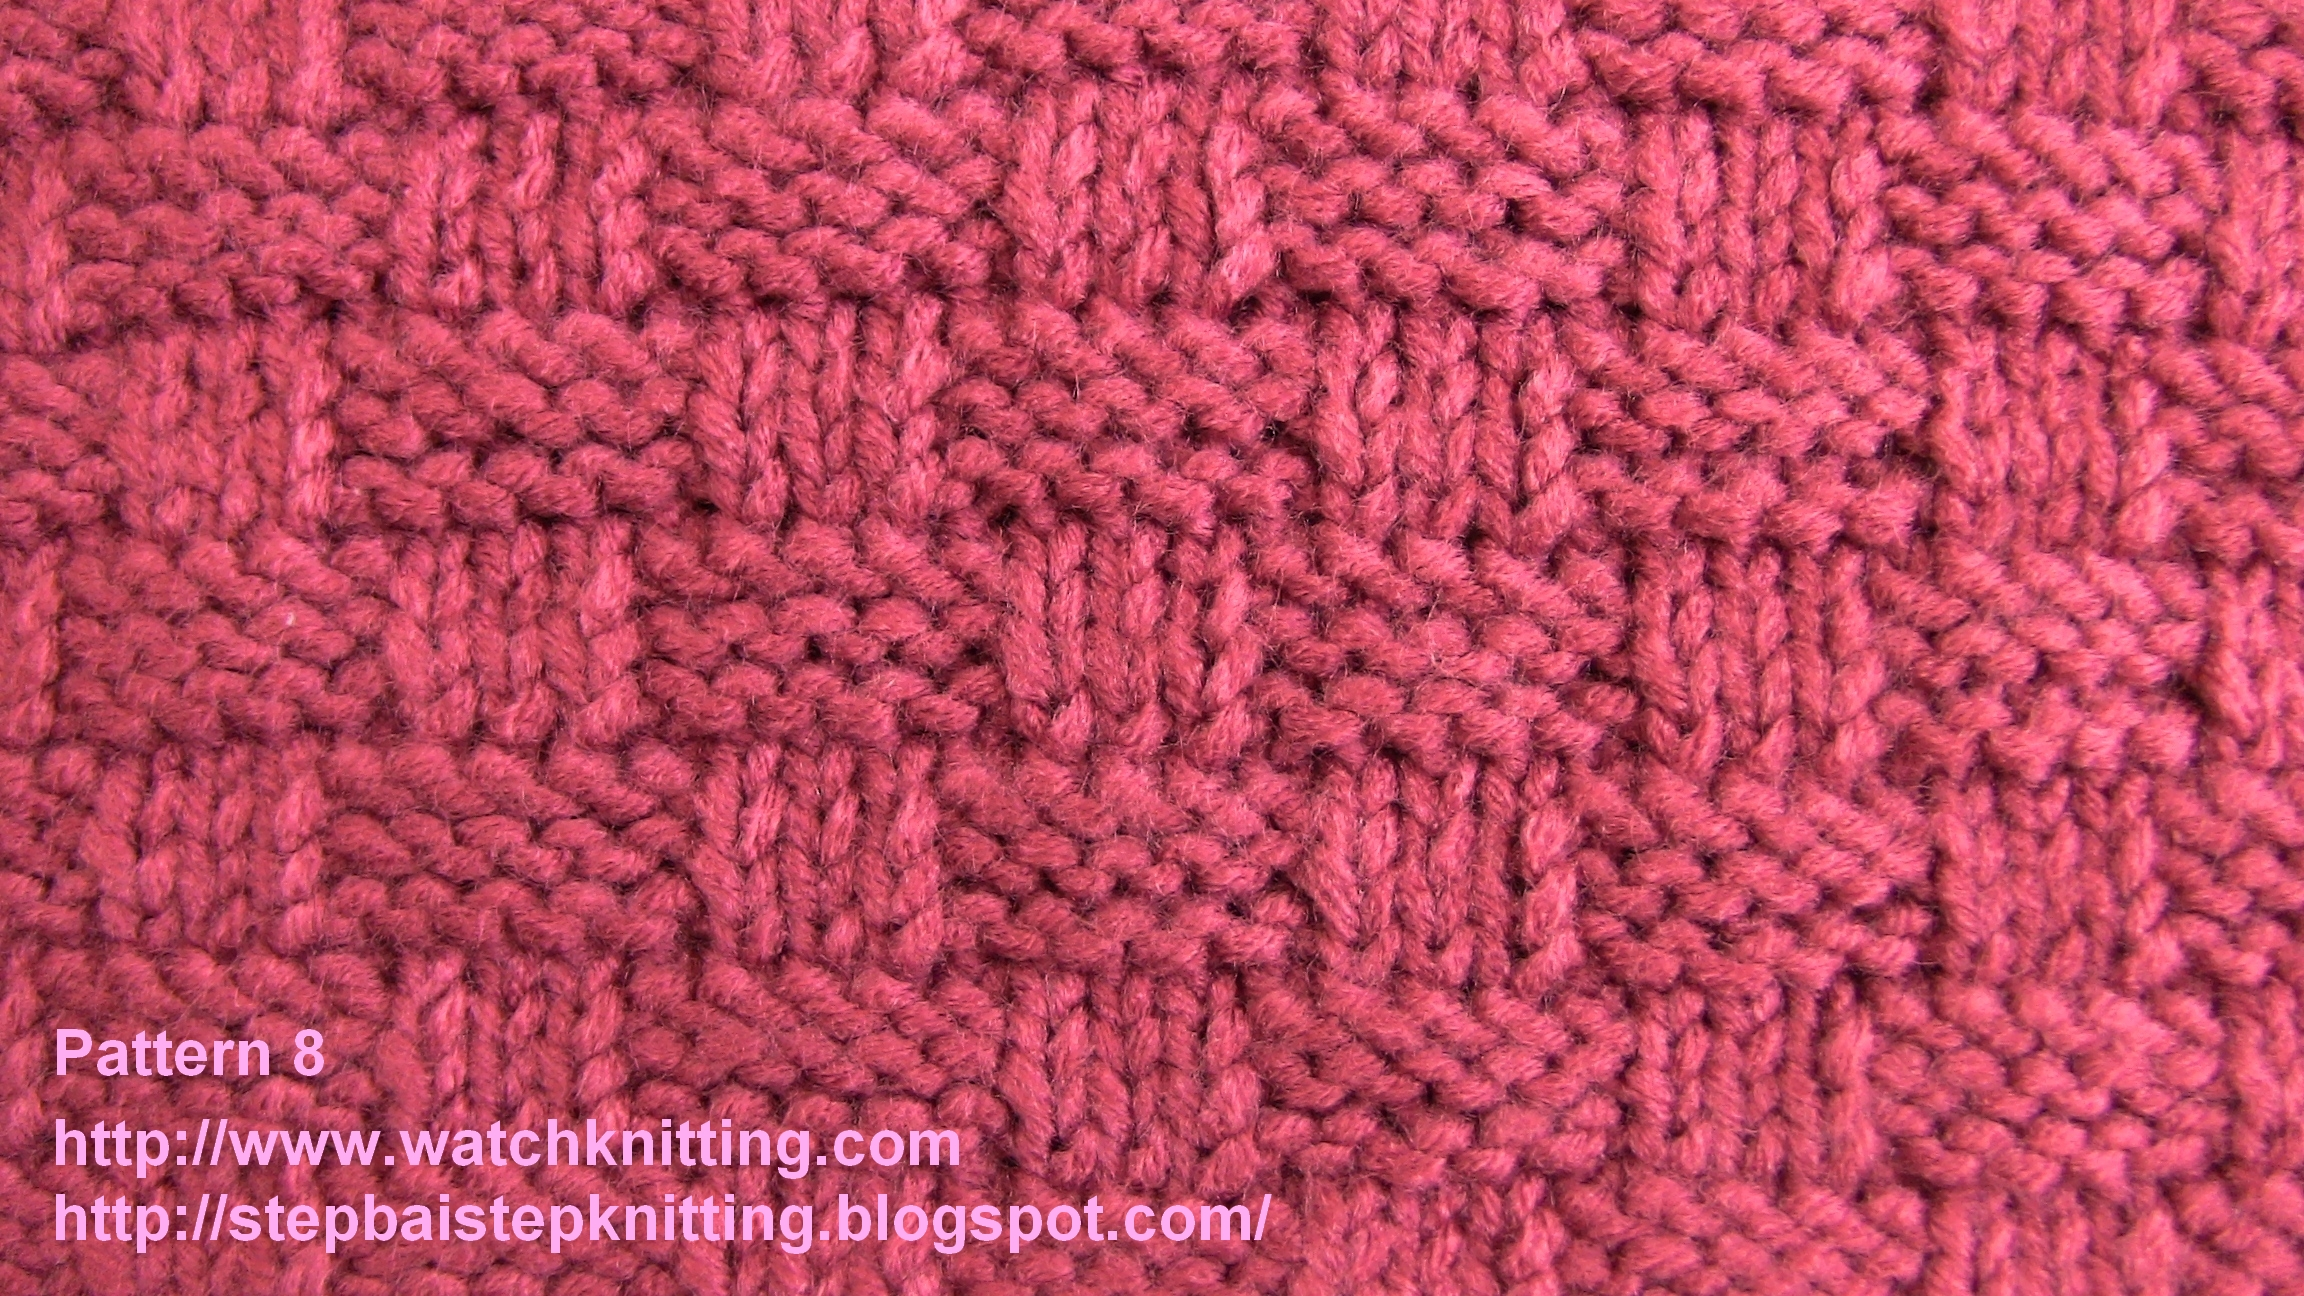 Knitting Pictures Free : Fancy knitting stitches images